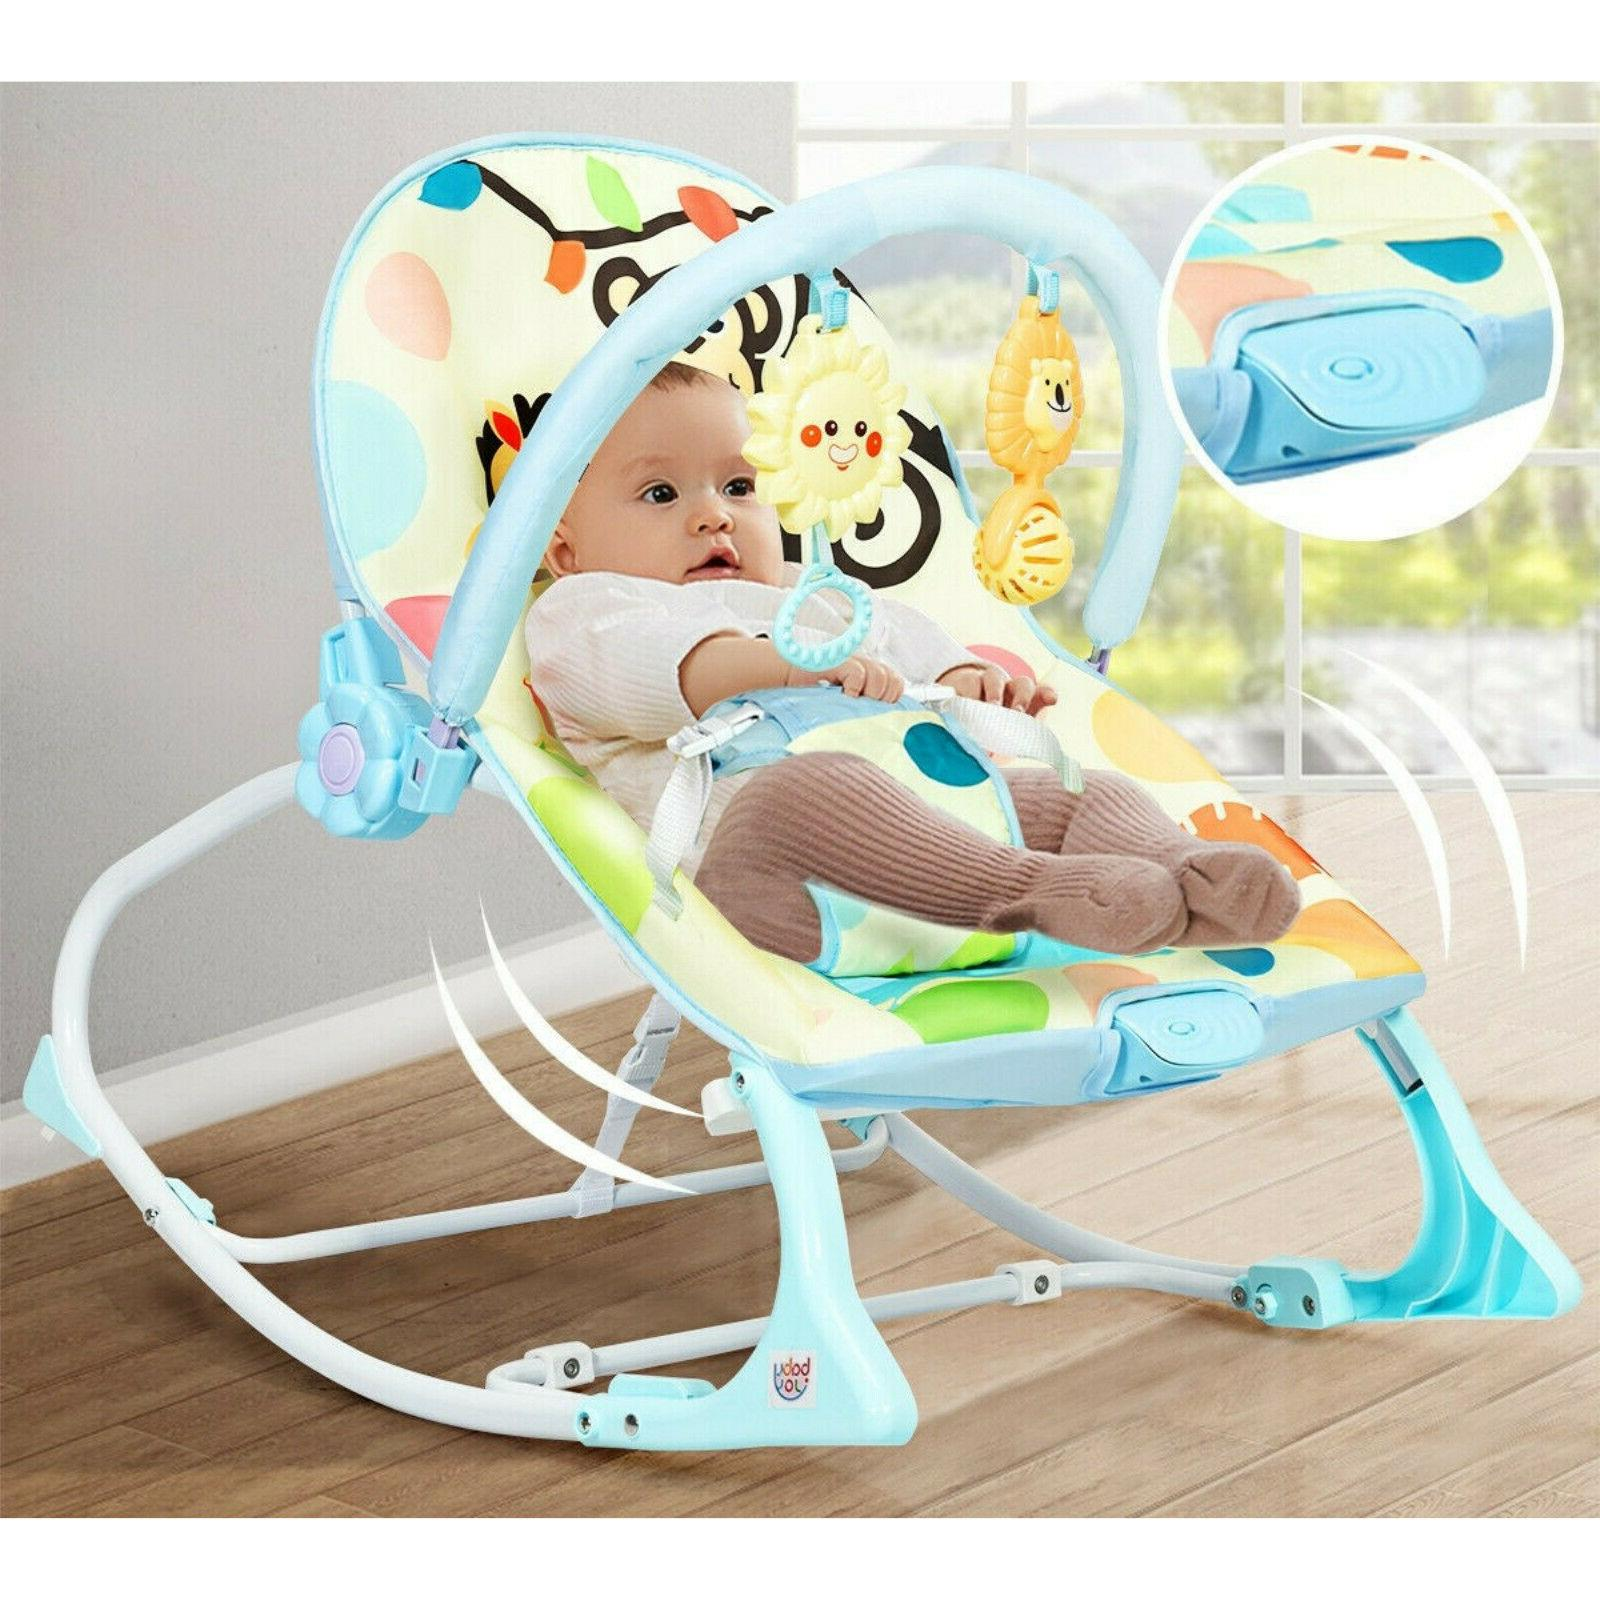 baby bouncer bed massager rocking chair